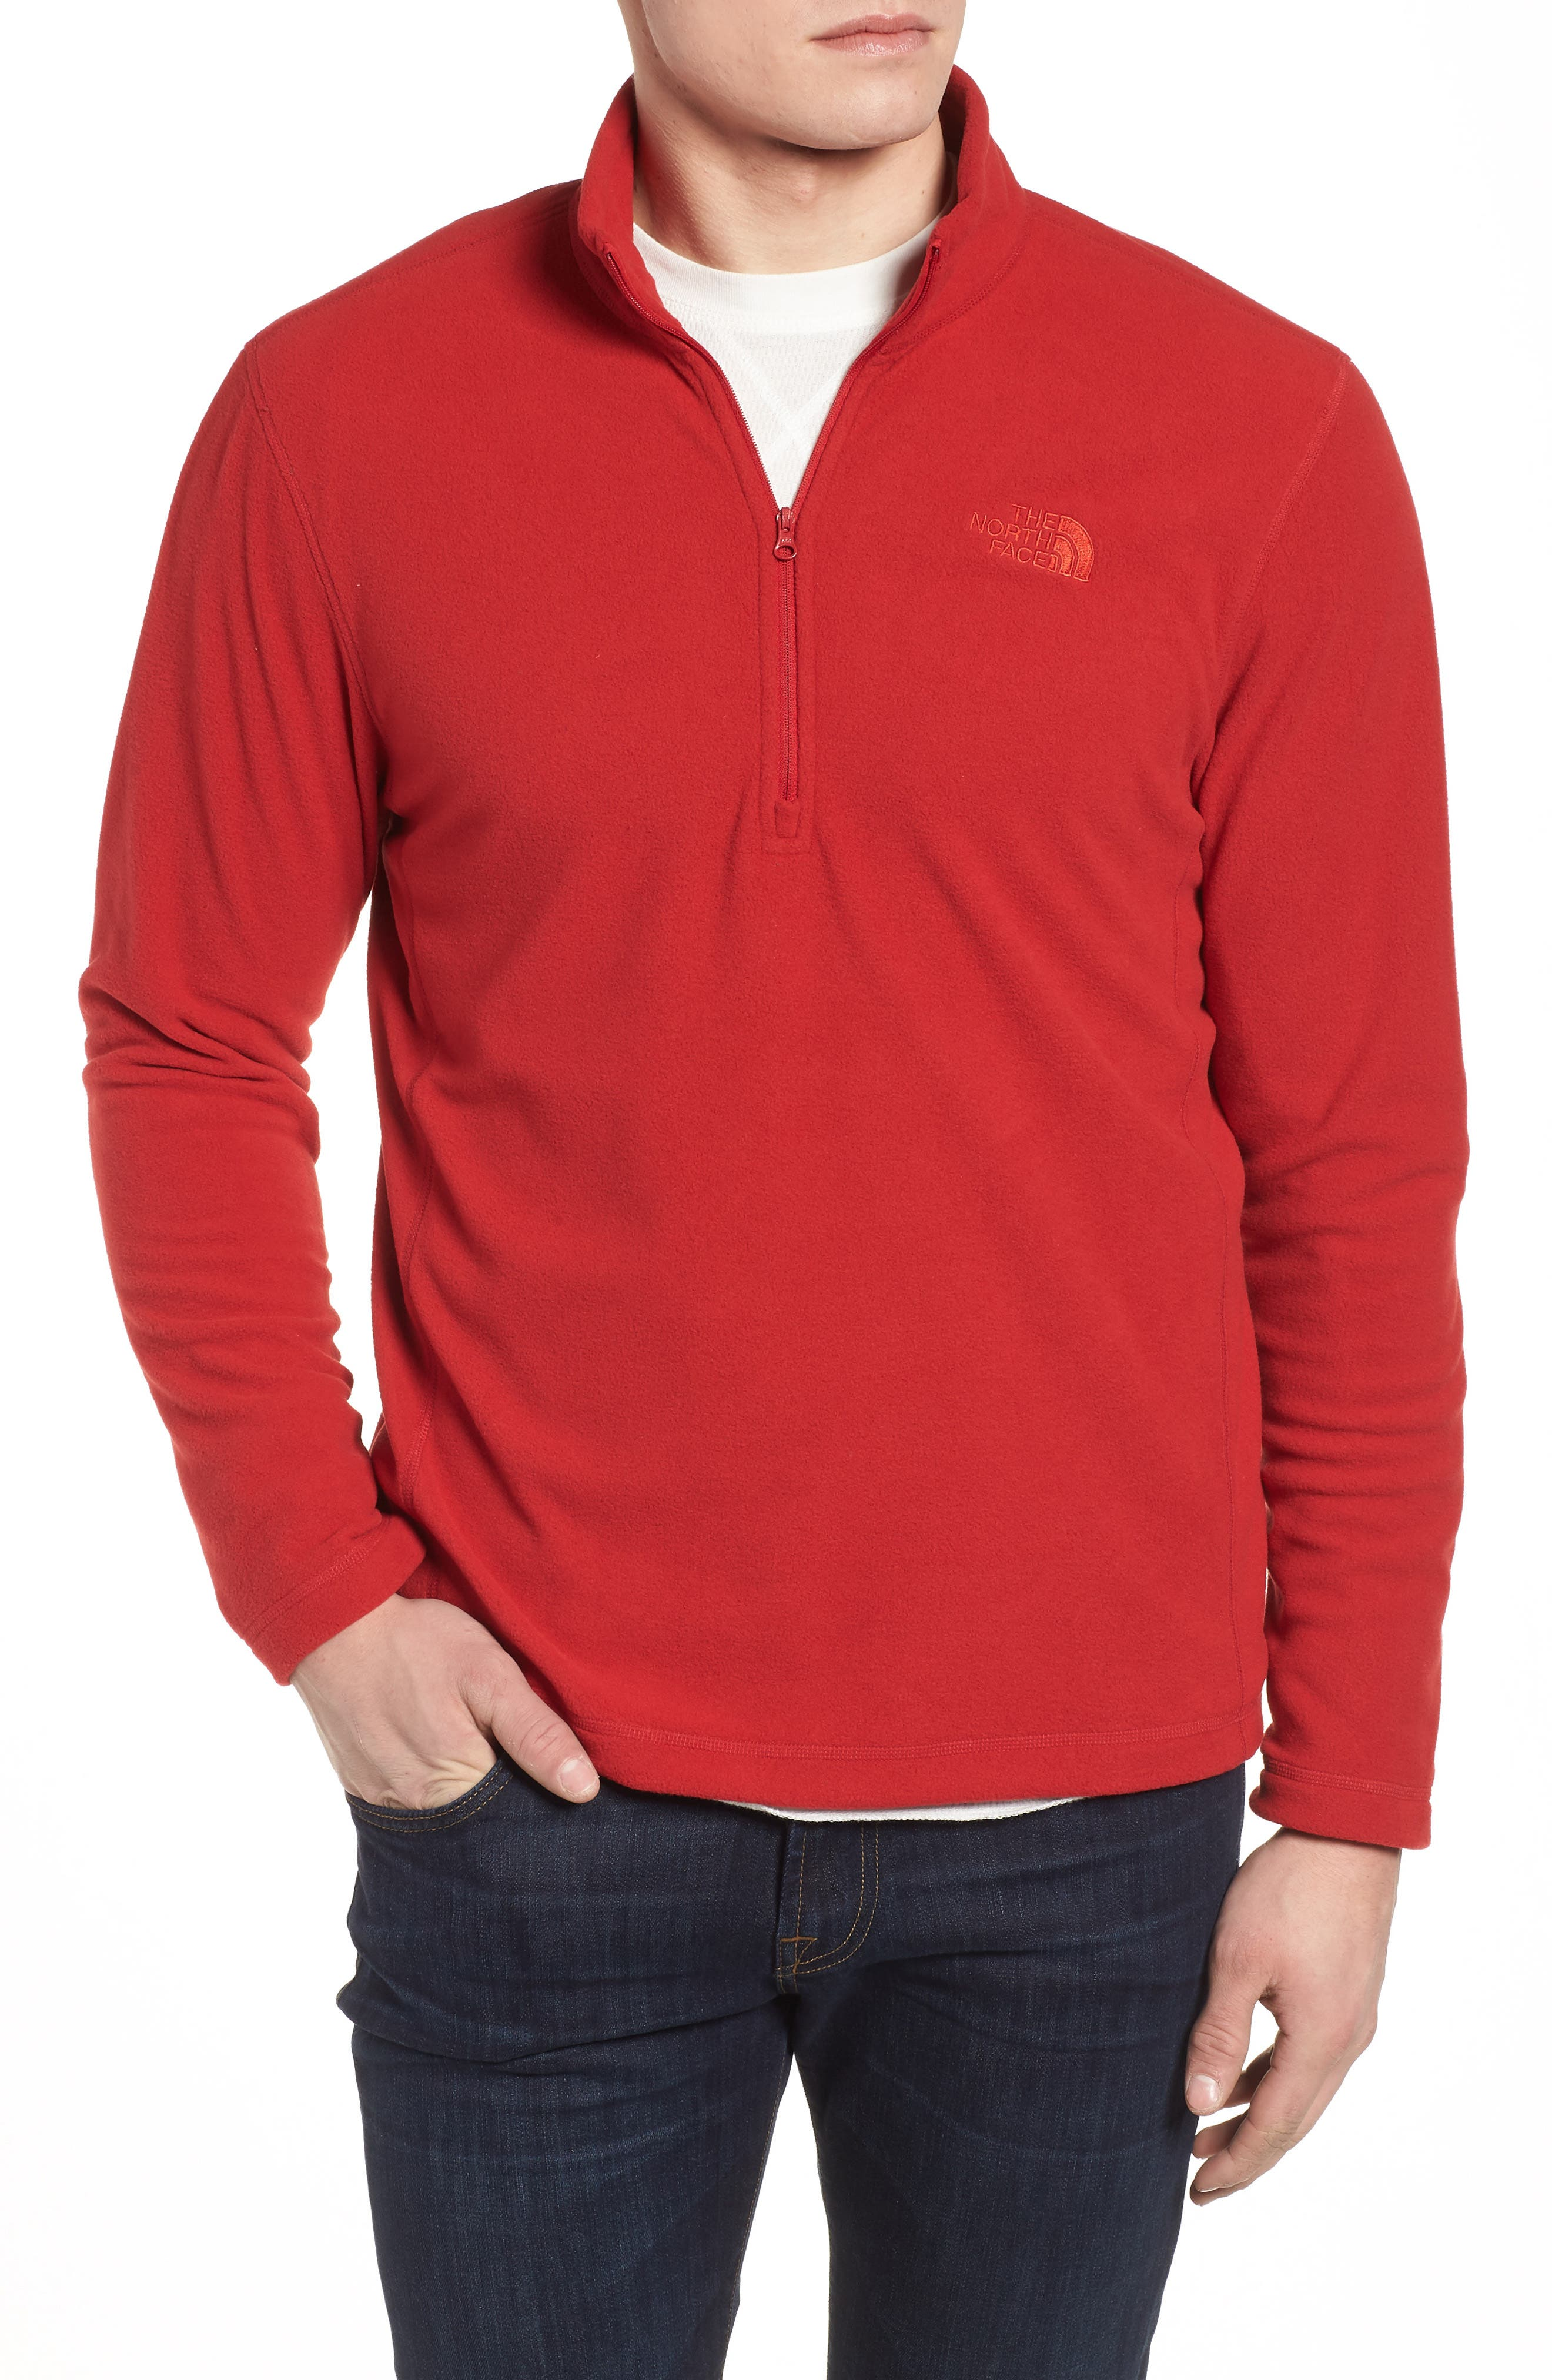 'TKA 100 Glacier' Quarter Zip Fleece Pullover,                             Main thumbnail 1, color,                             Rage Red/ Rage Red